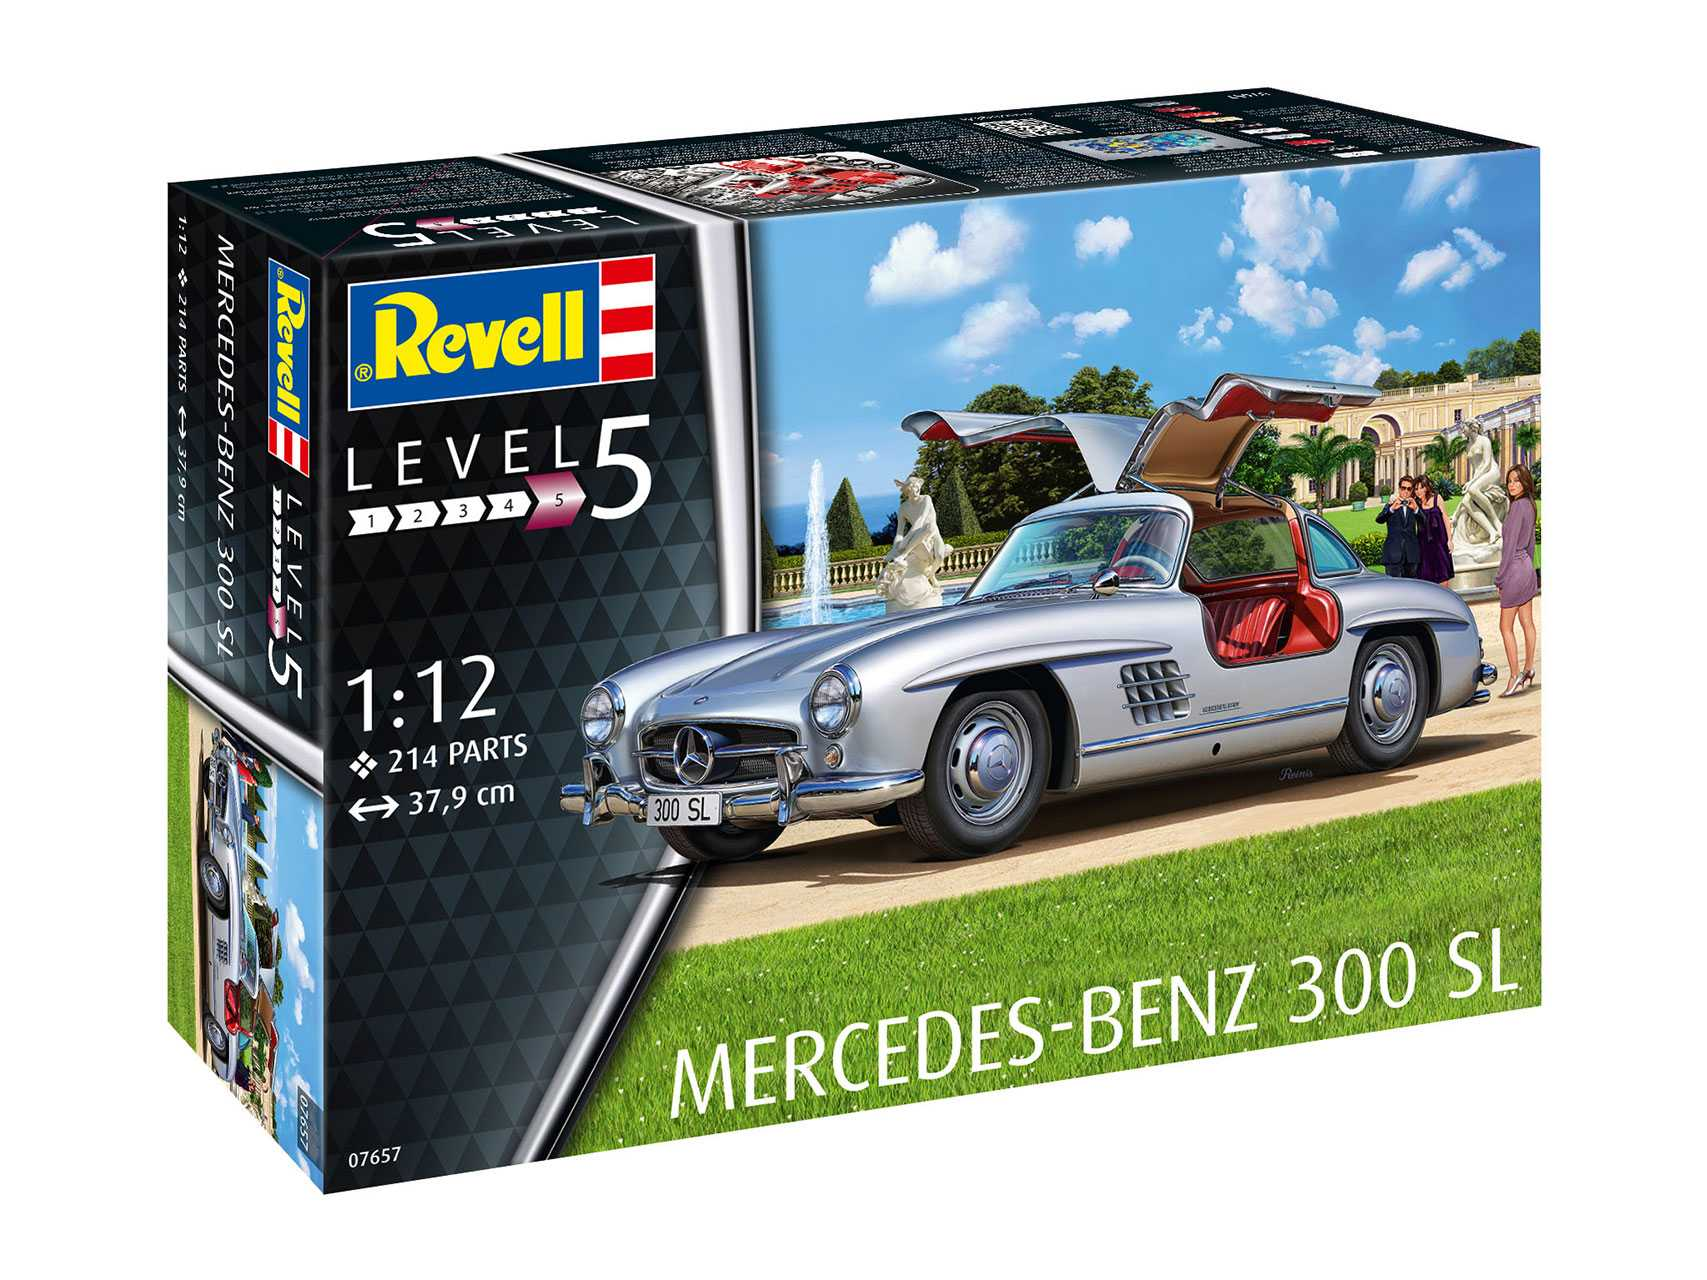 1:12 Mercedes-Benz 300 SL